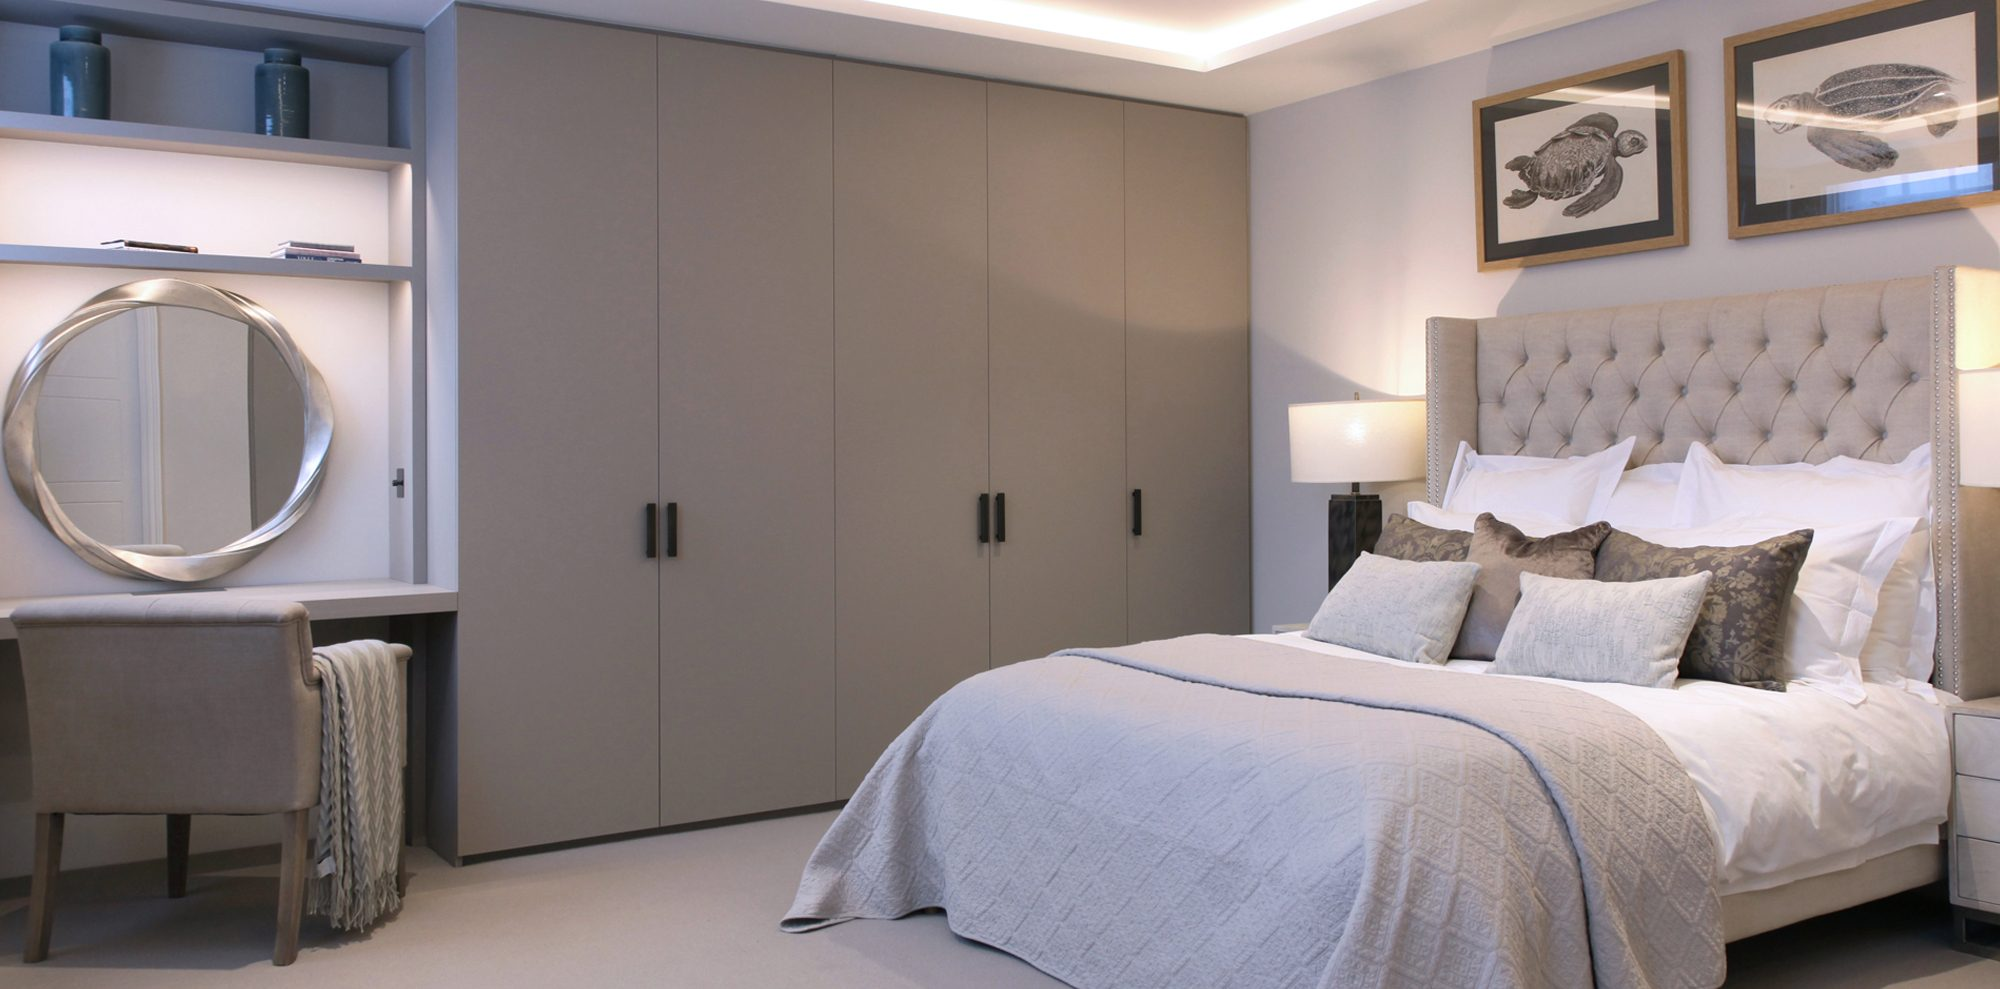 Bespoke fitted wardrobes in bedroom